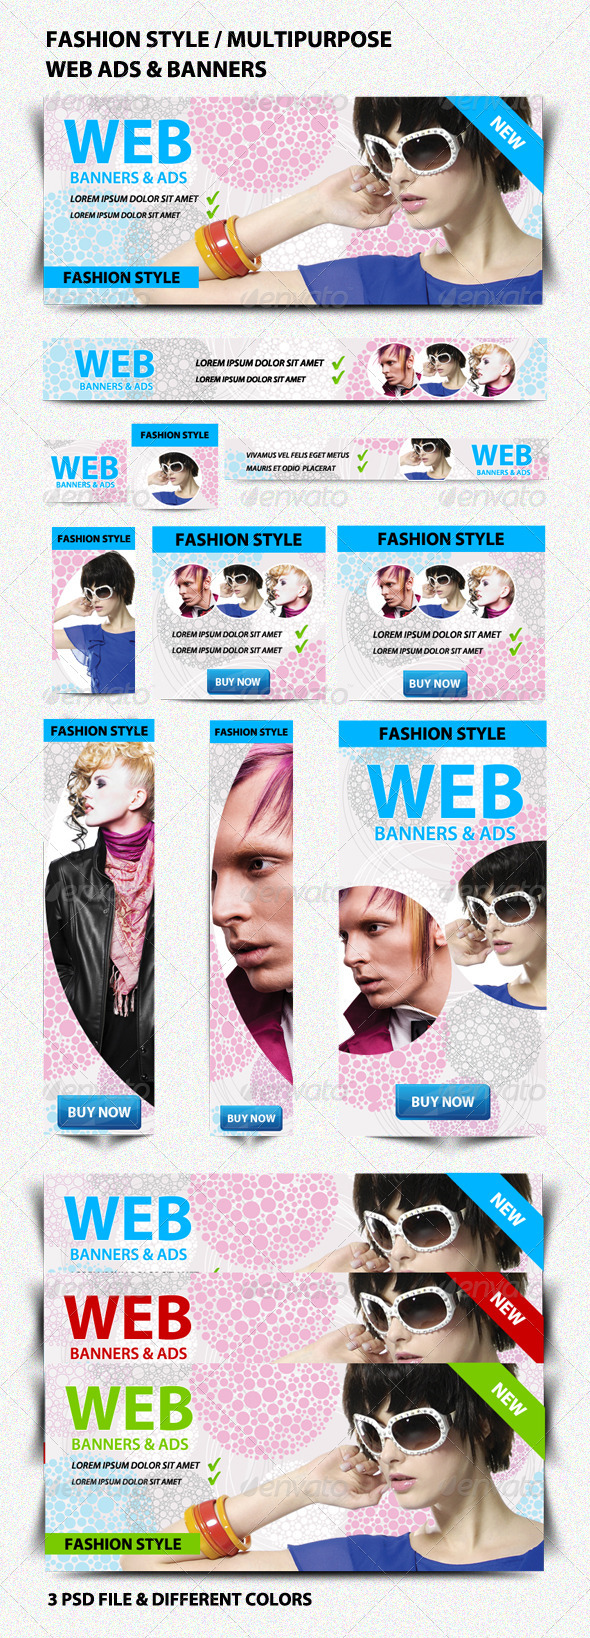 Fashion Style Multipurpose Web Ads & Banners